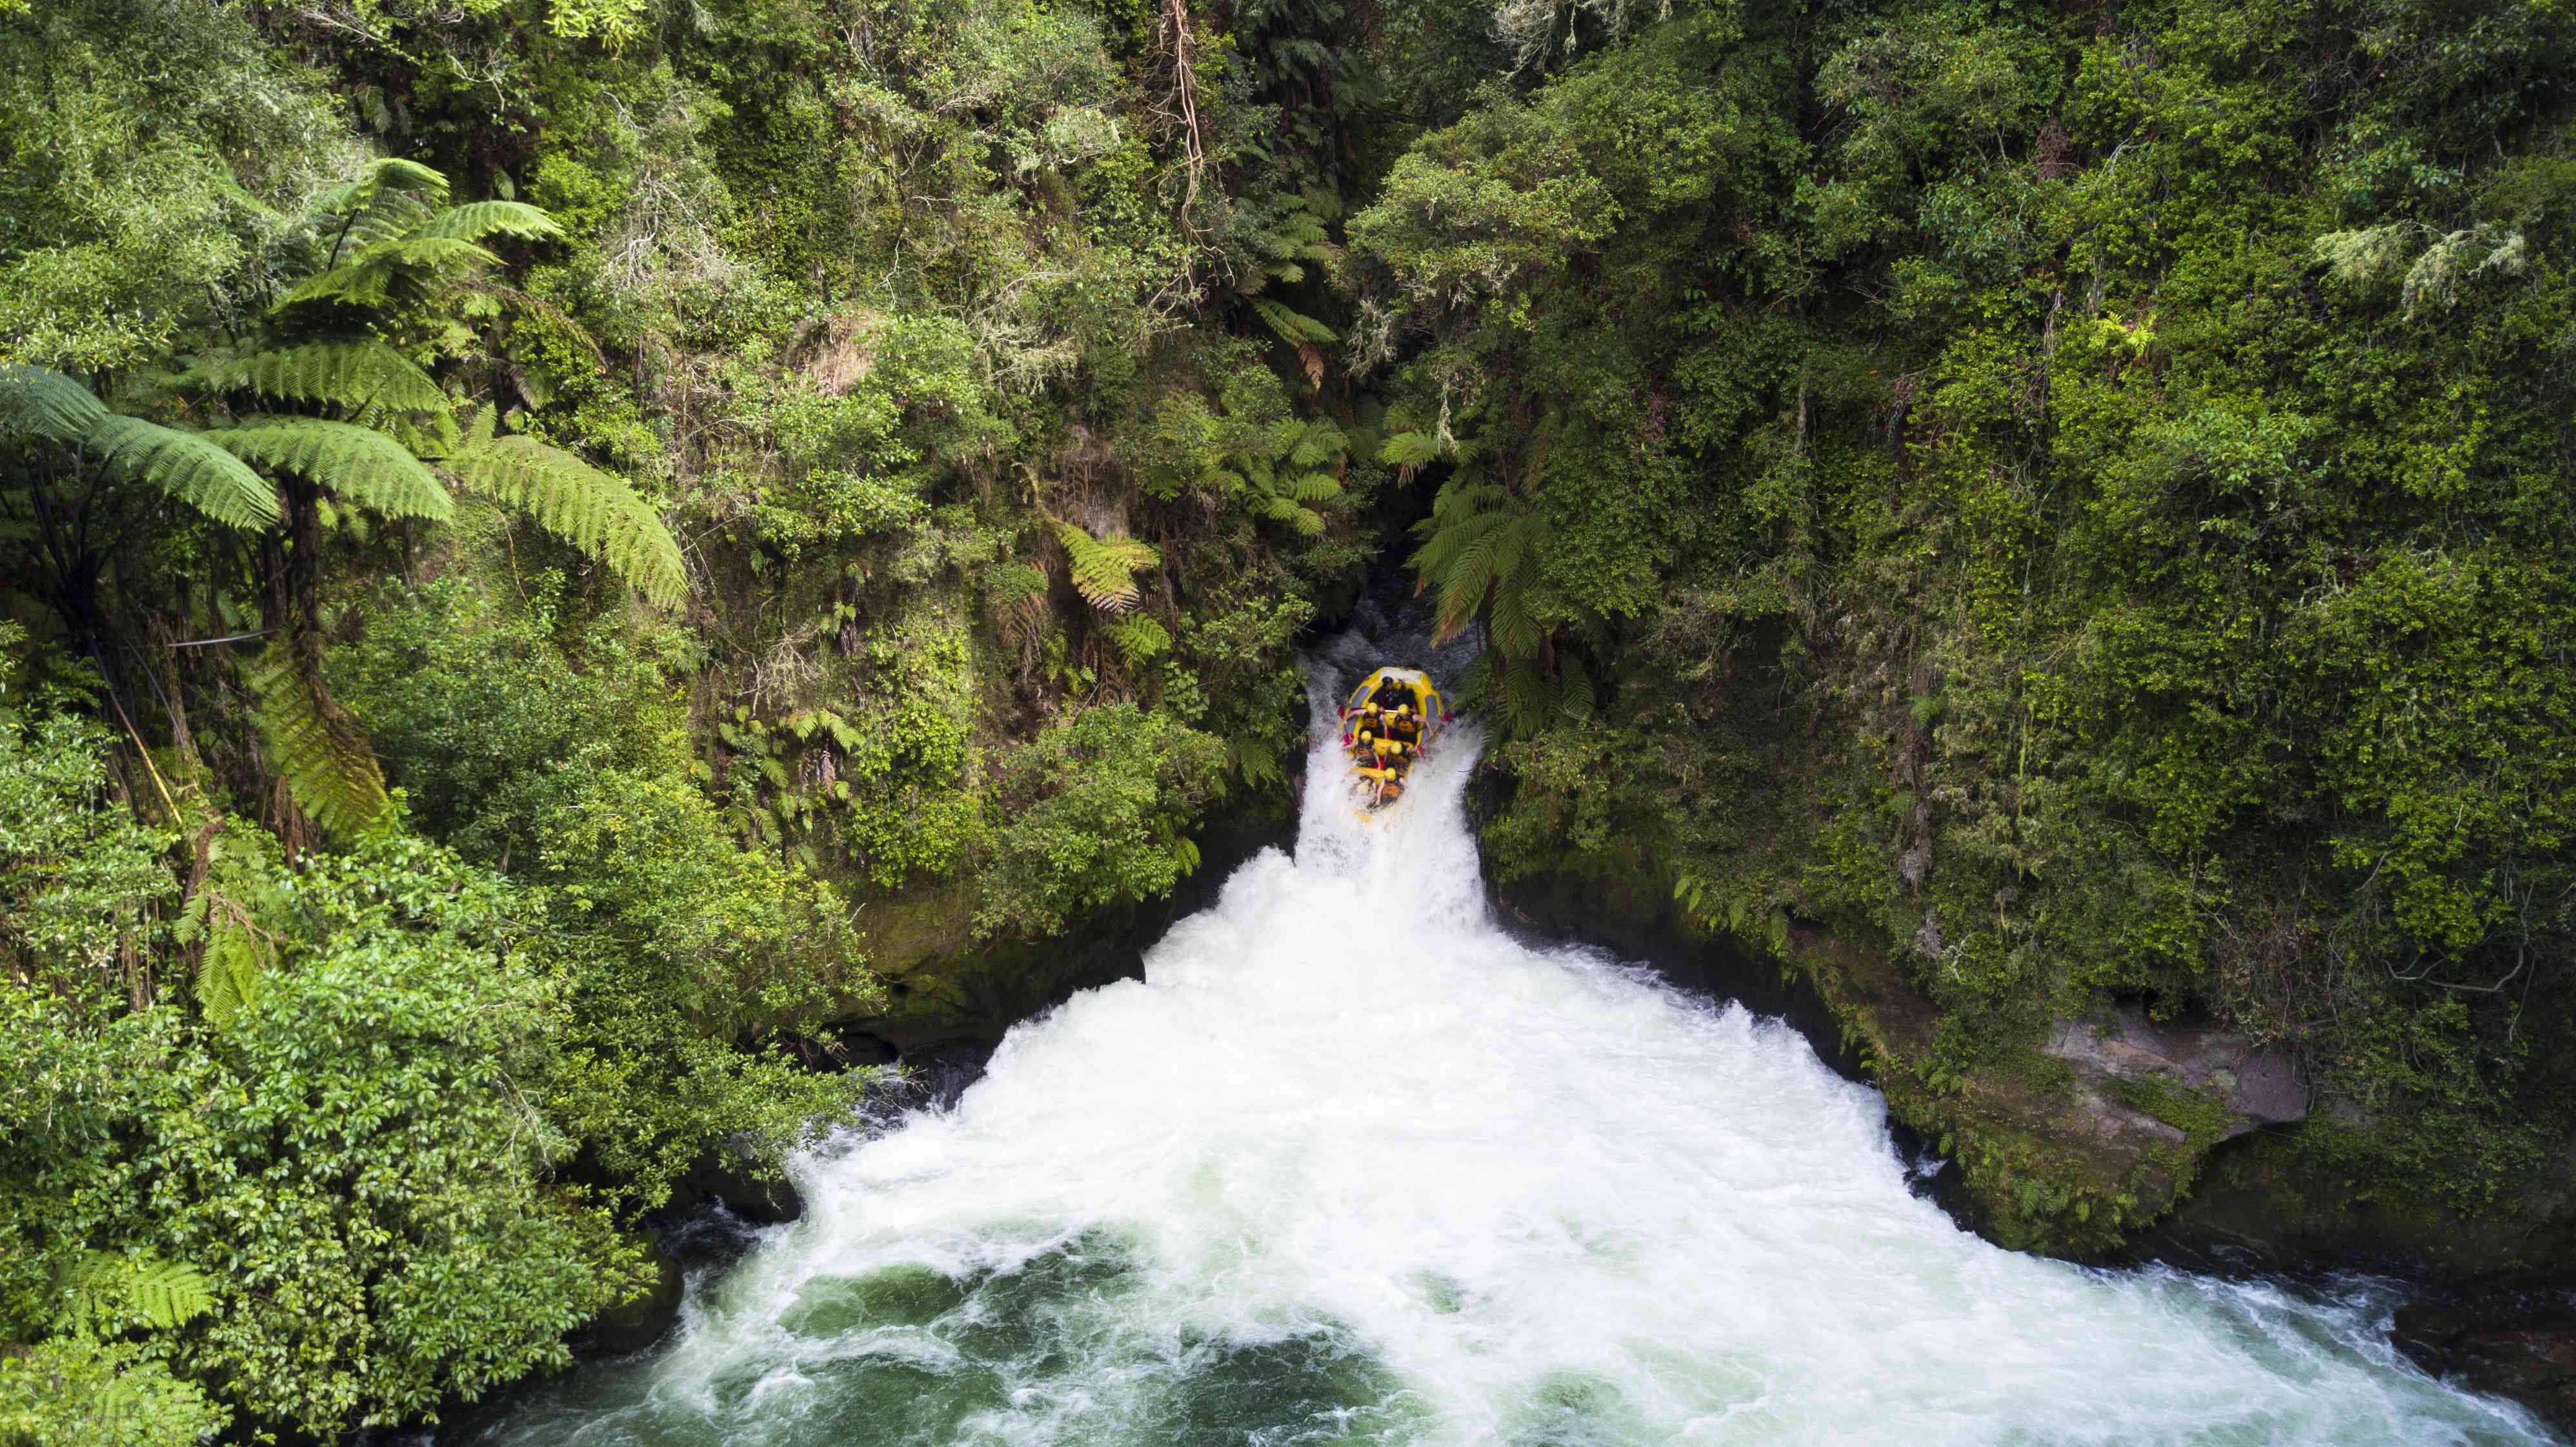 rafting falling down waterfalls surrounded by forest